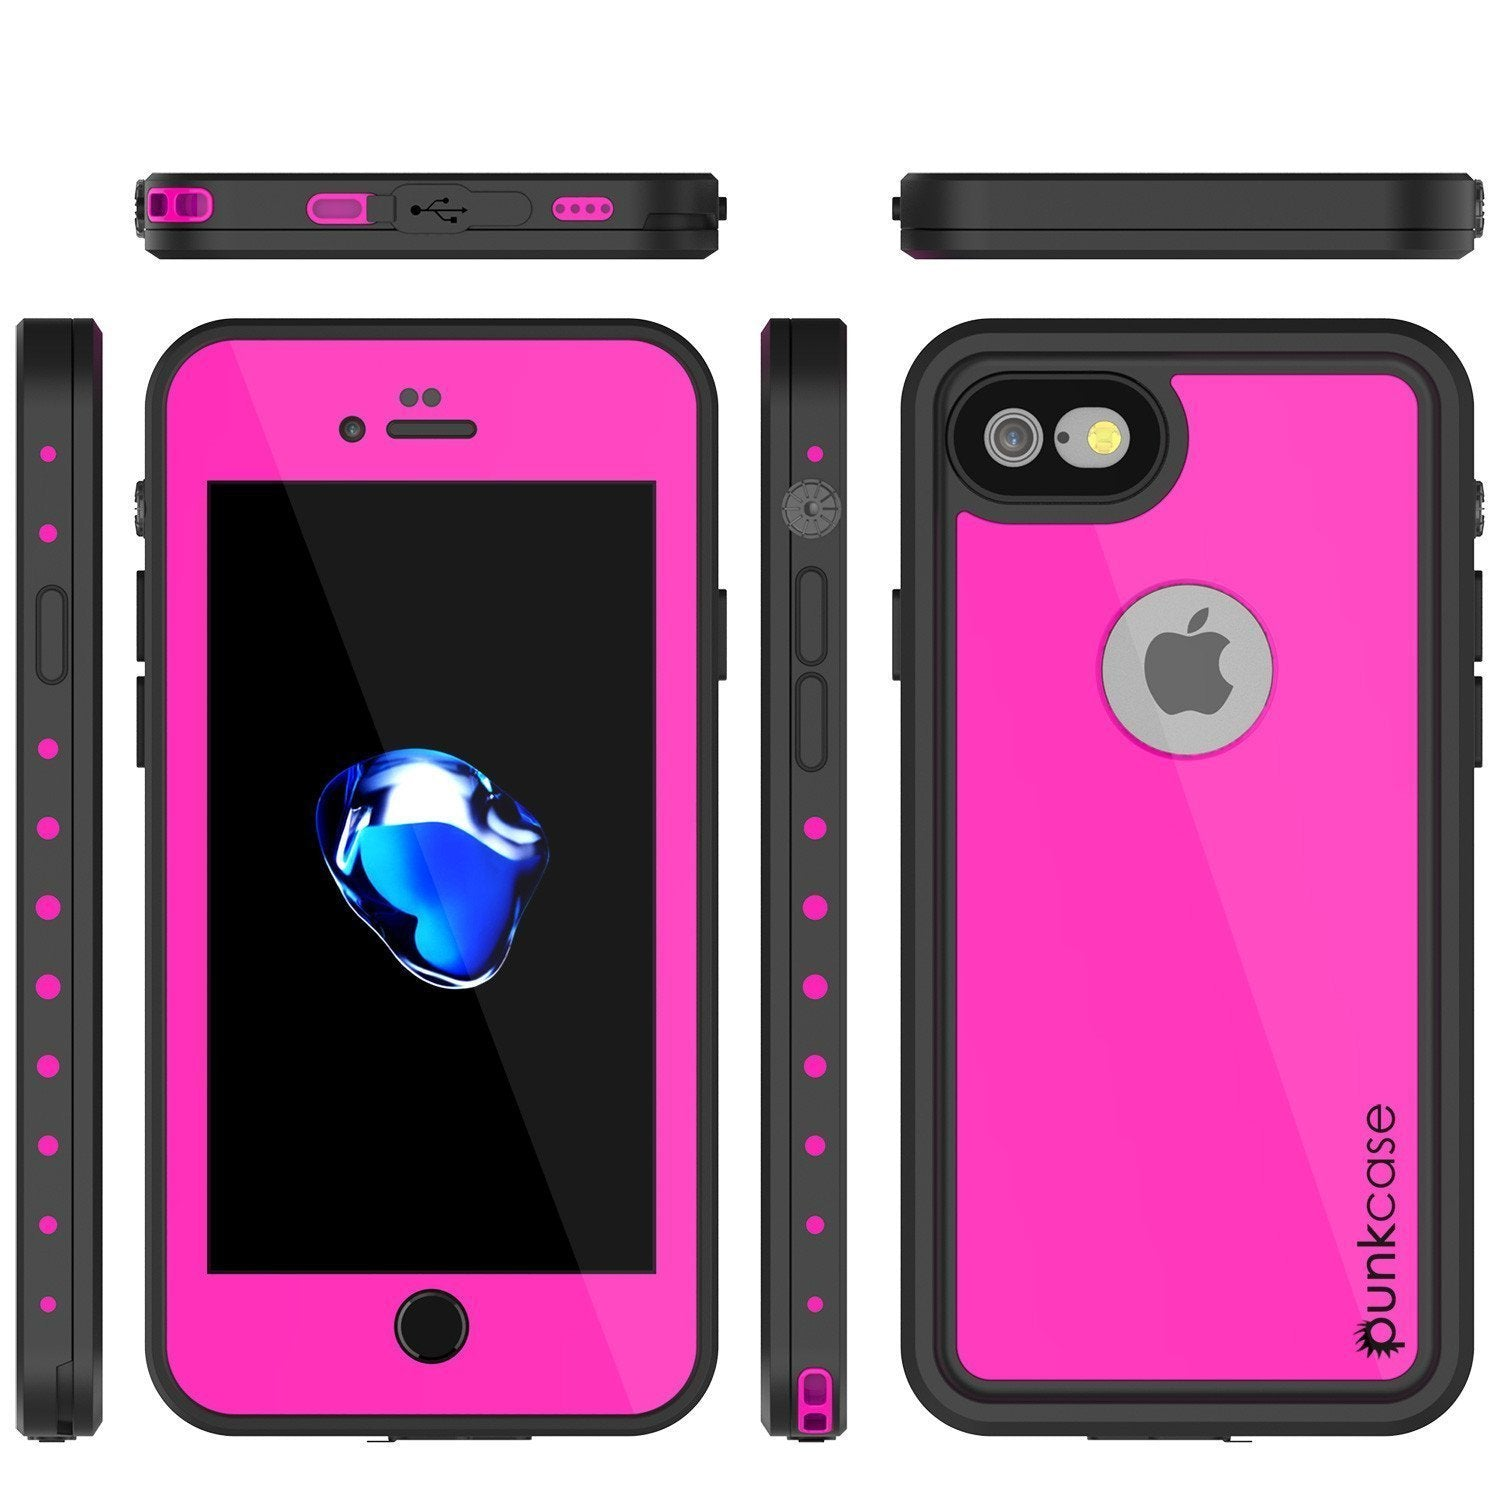 iPhone 8 Waterproof Case, Punkcase [Pink] [StudStar Series] [Slim Fit][IP68 Certified]  [Dirtproof] [Snowproof]